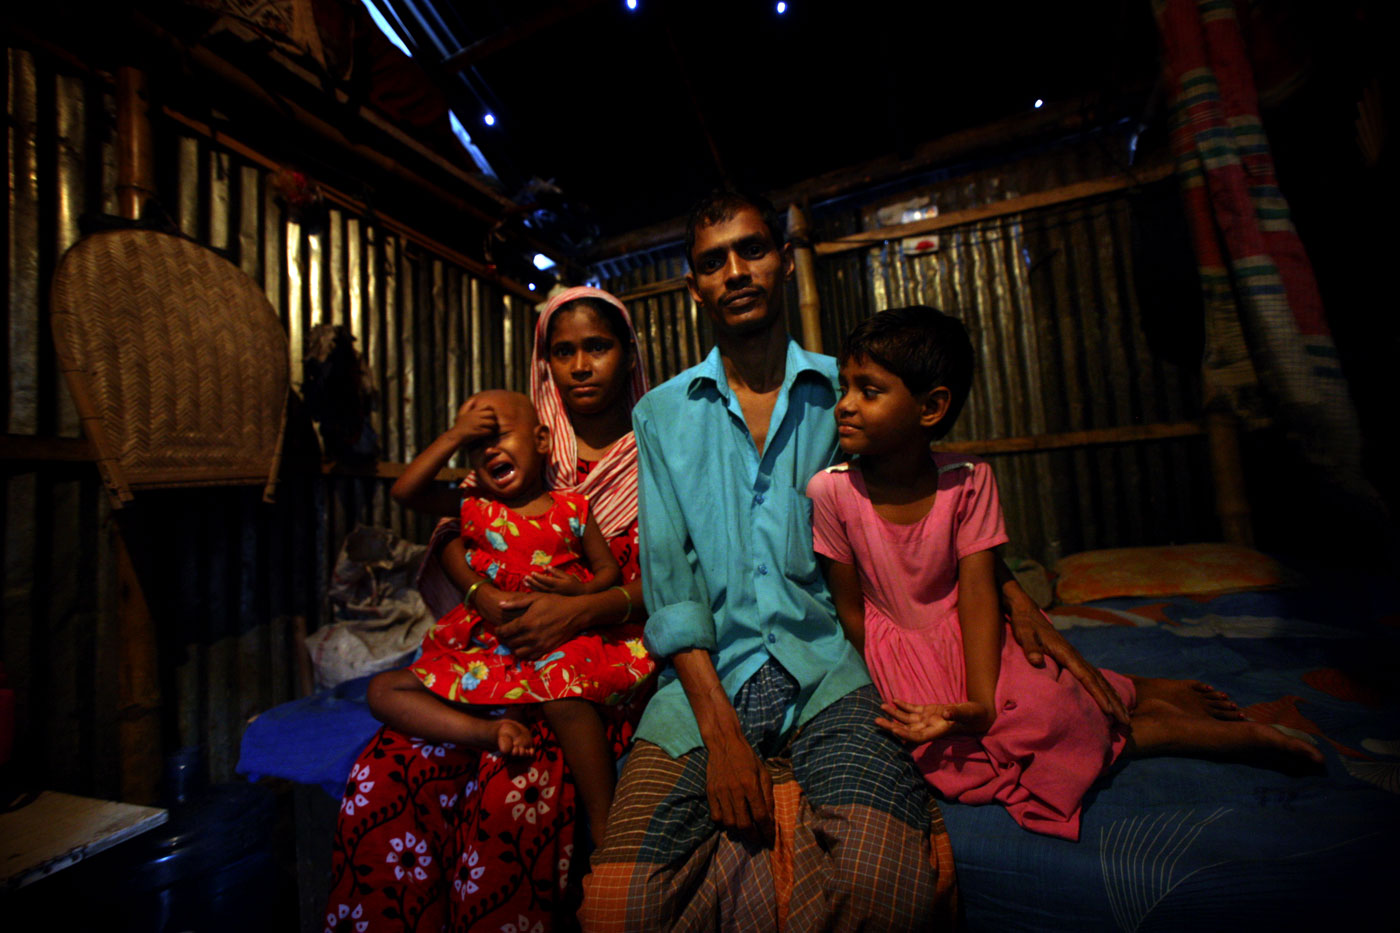 Nizam Hawladar, his wife Mahe Noor, and two children live in the largest slum in Bangladesh called Korail. This story focuses on their family, one of tens of thousands of families in Dhaka who are living in the slums. They are one of thousands of {quote}climate refugees{quote} - people who have fled their village home due to impoverished conditions attributed to climate change. They come to the larger cities in search of work, but often end up stuck in slums like Korail for years.